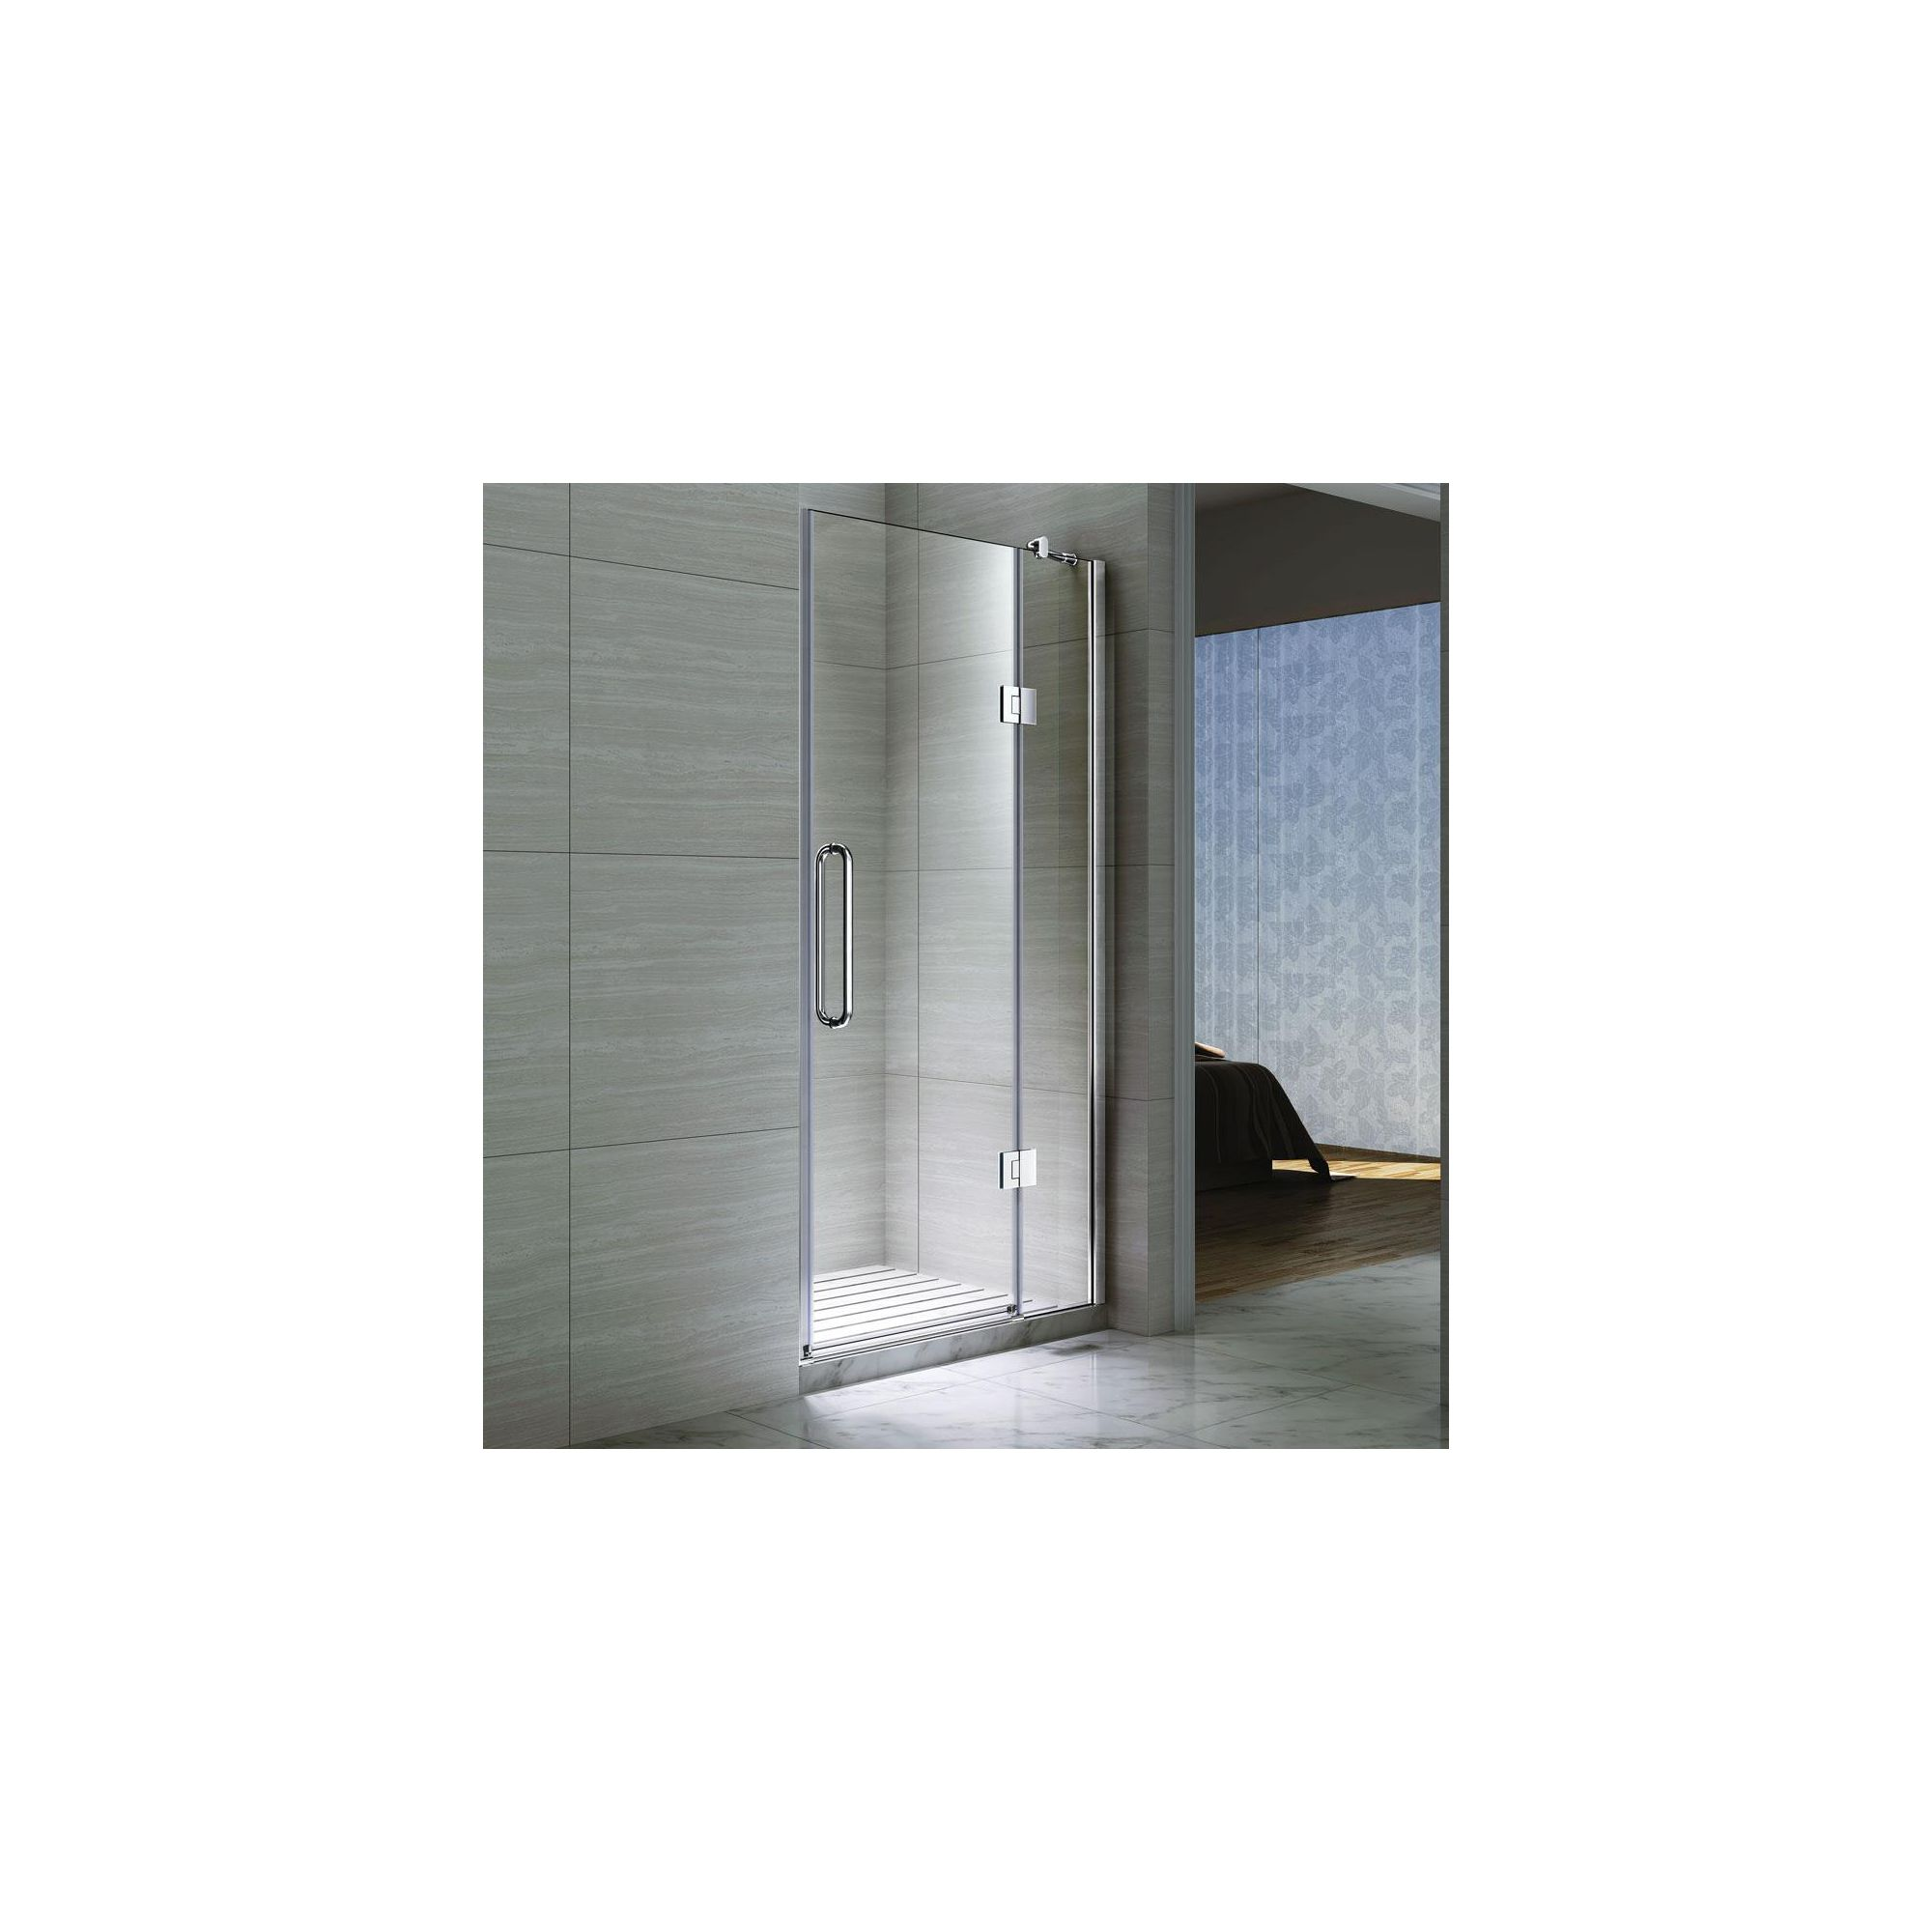 Desire Ten Inline Hinged Shower Door, 1000mm Wide, Semi-Frameless, 10mm Glass at Tesco Direct